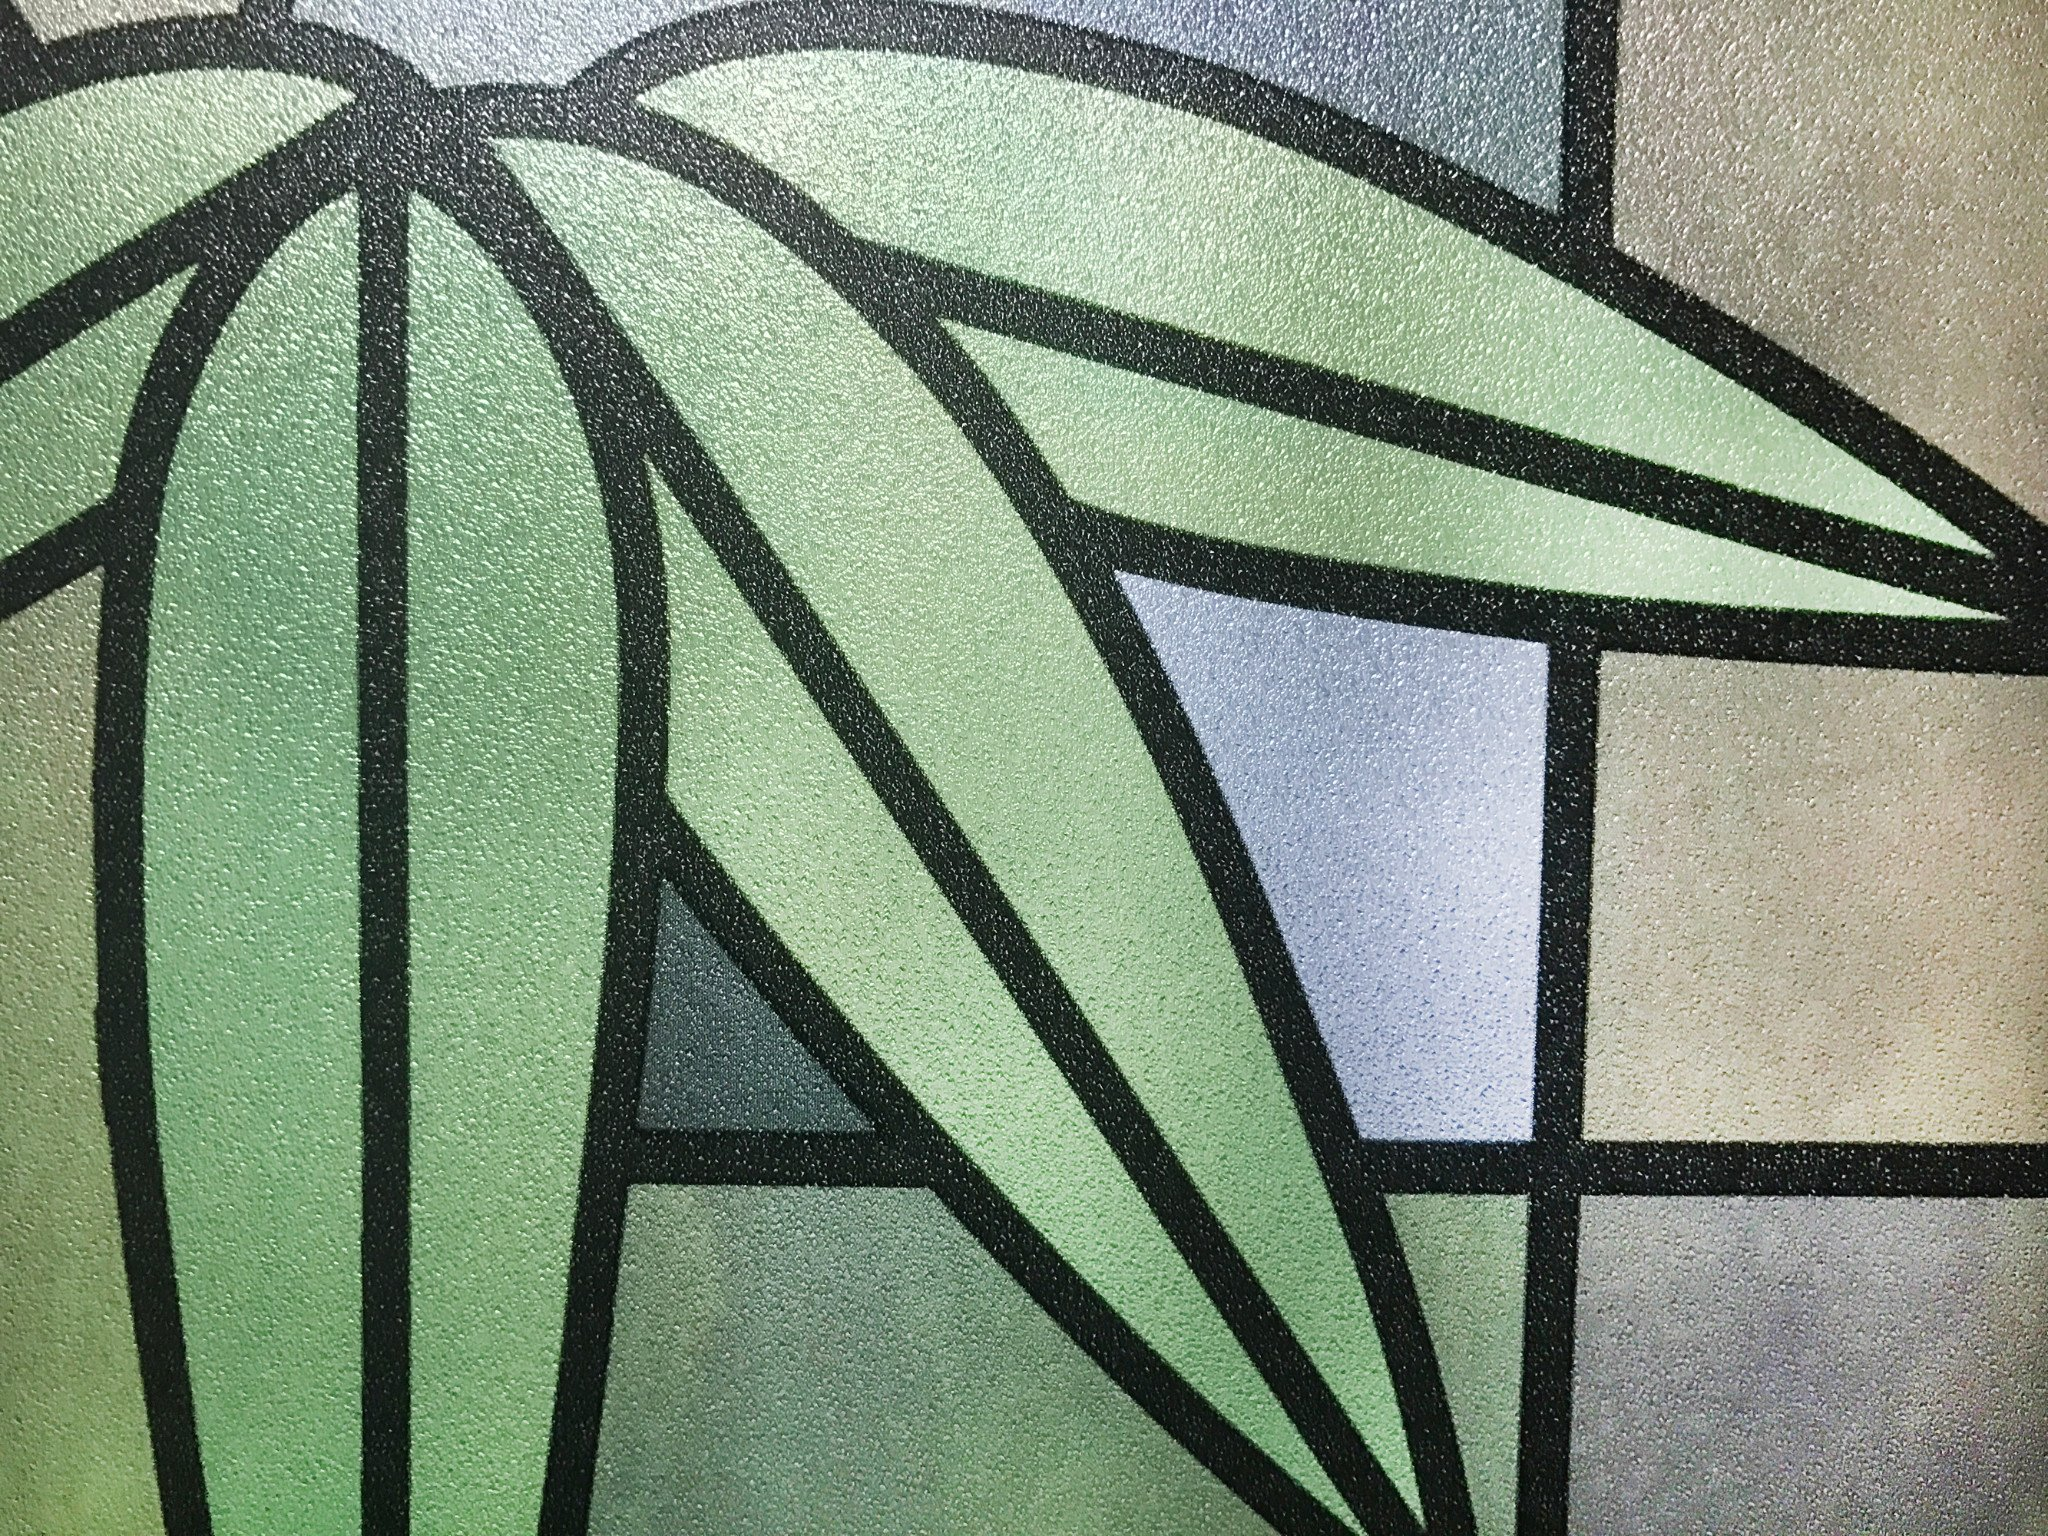 CHOIS Static 506-2 Cling Vinyl Home Decor Privacy Bamboo Plant Stain Glass Window Film 35'' x 1800''